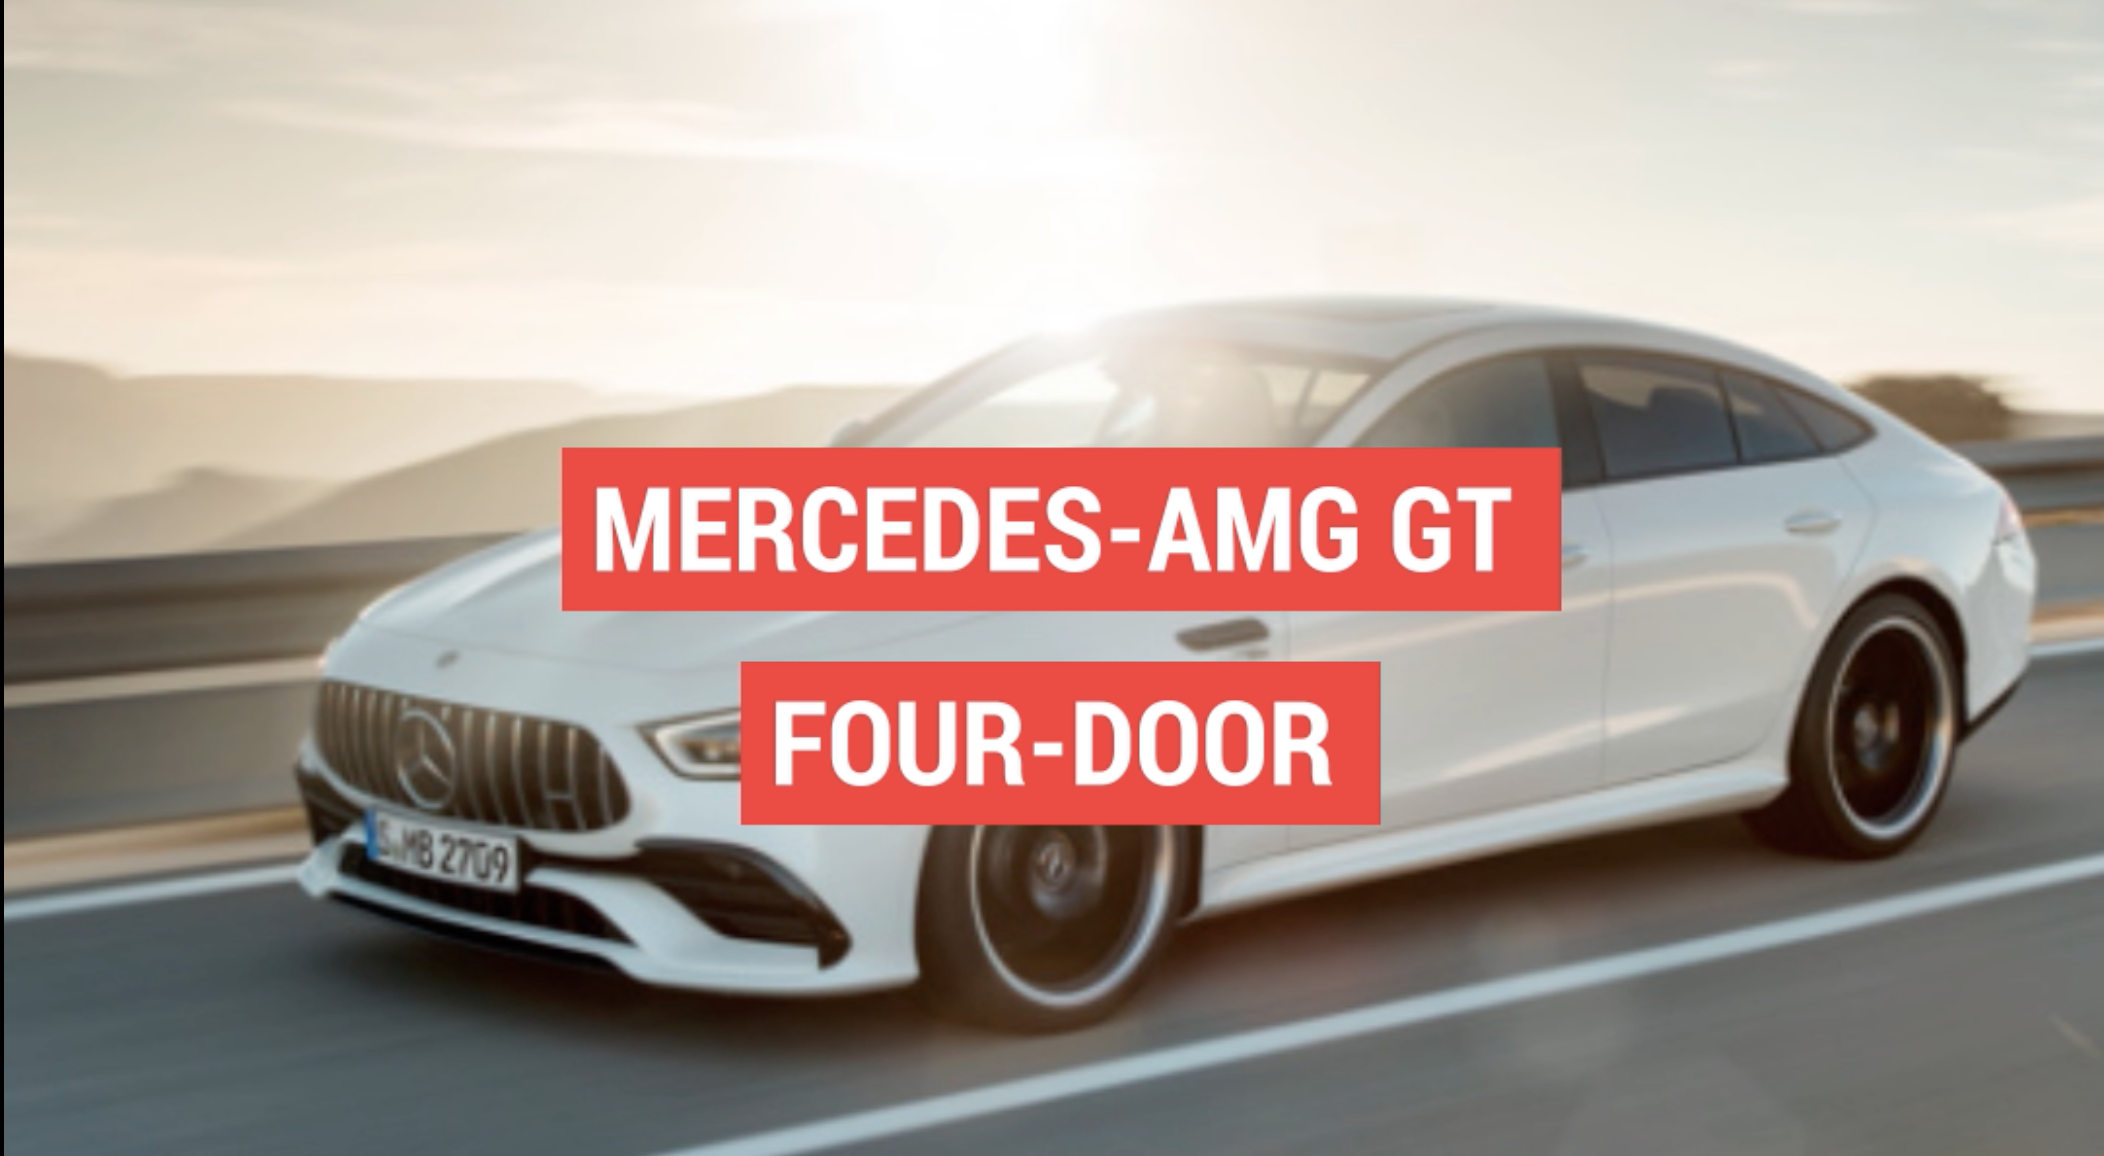 Mercedes AMG GT 4 Door and CLS are similar but different Autoblog